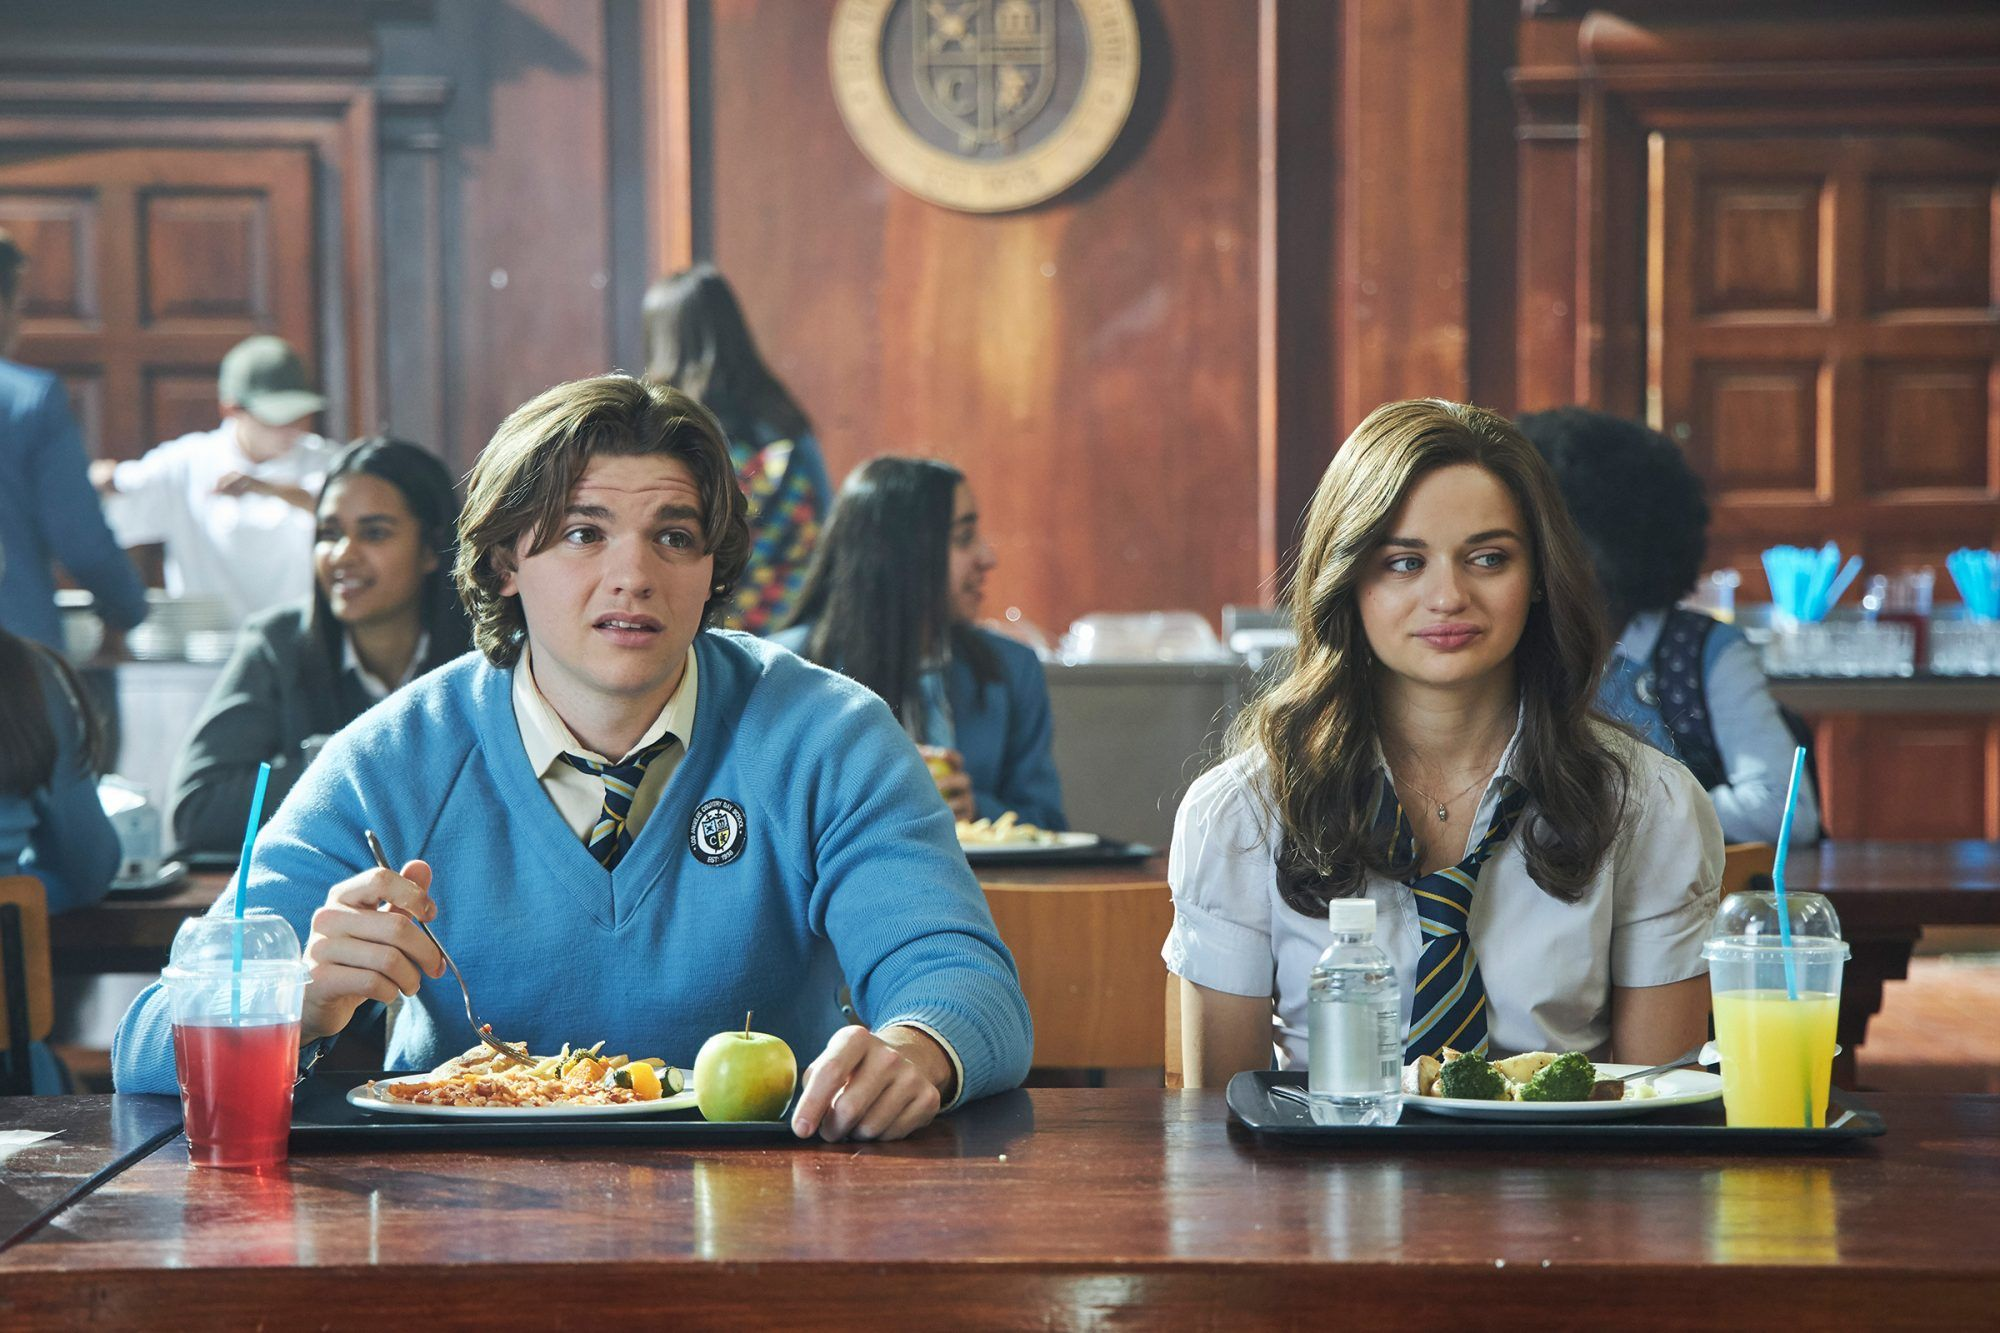 The Kissing Booth 2 Trailer: Joey King and Jacob Elordi Struggle with Long Distance in Sequel